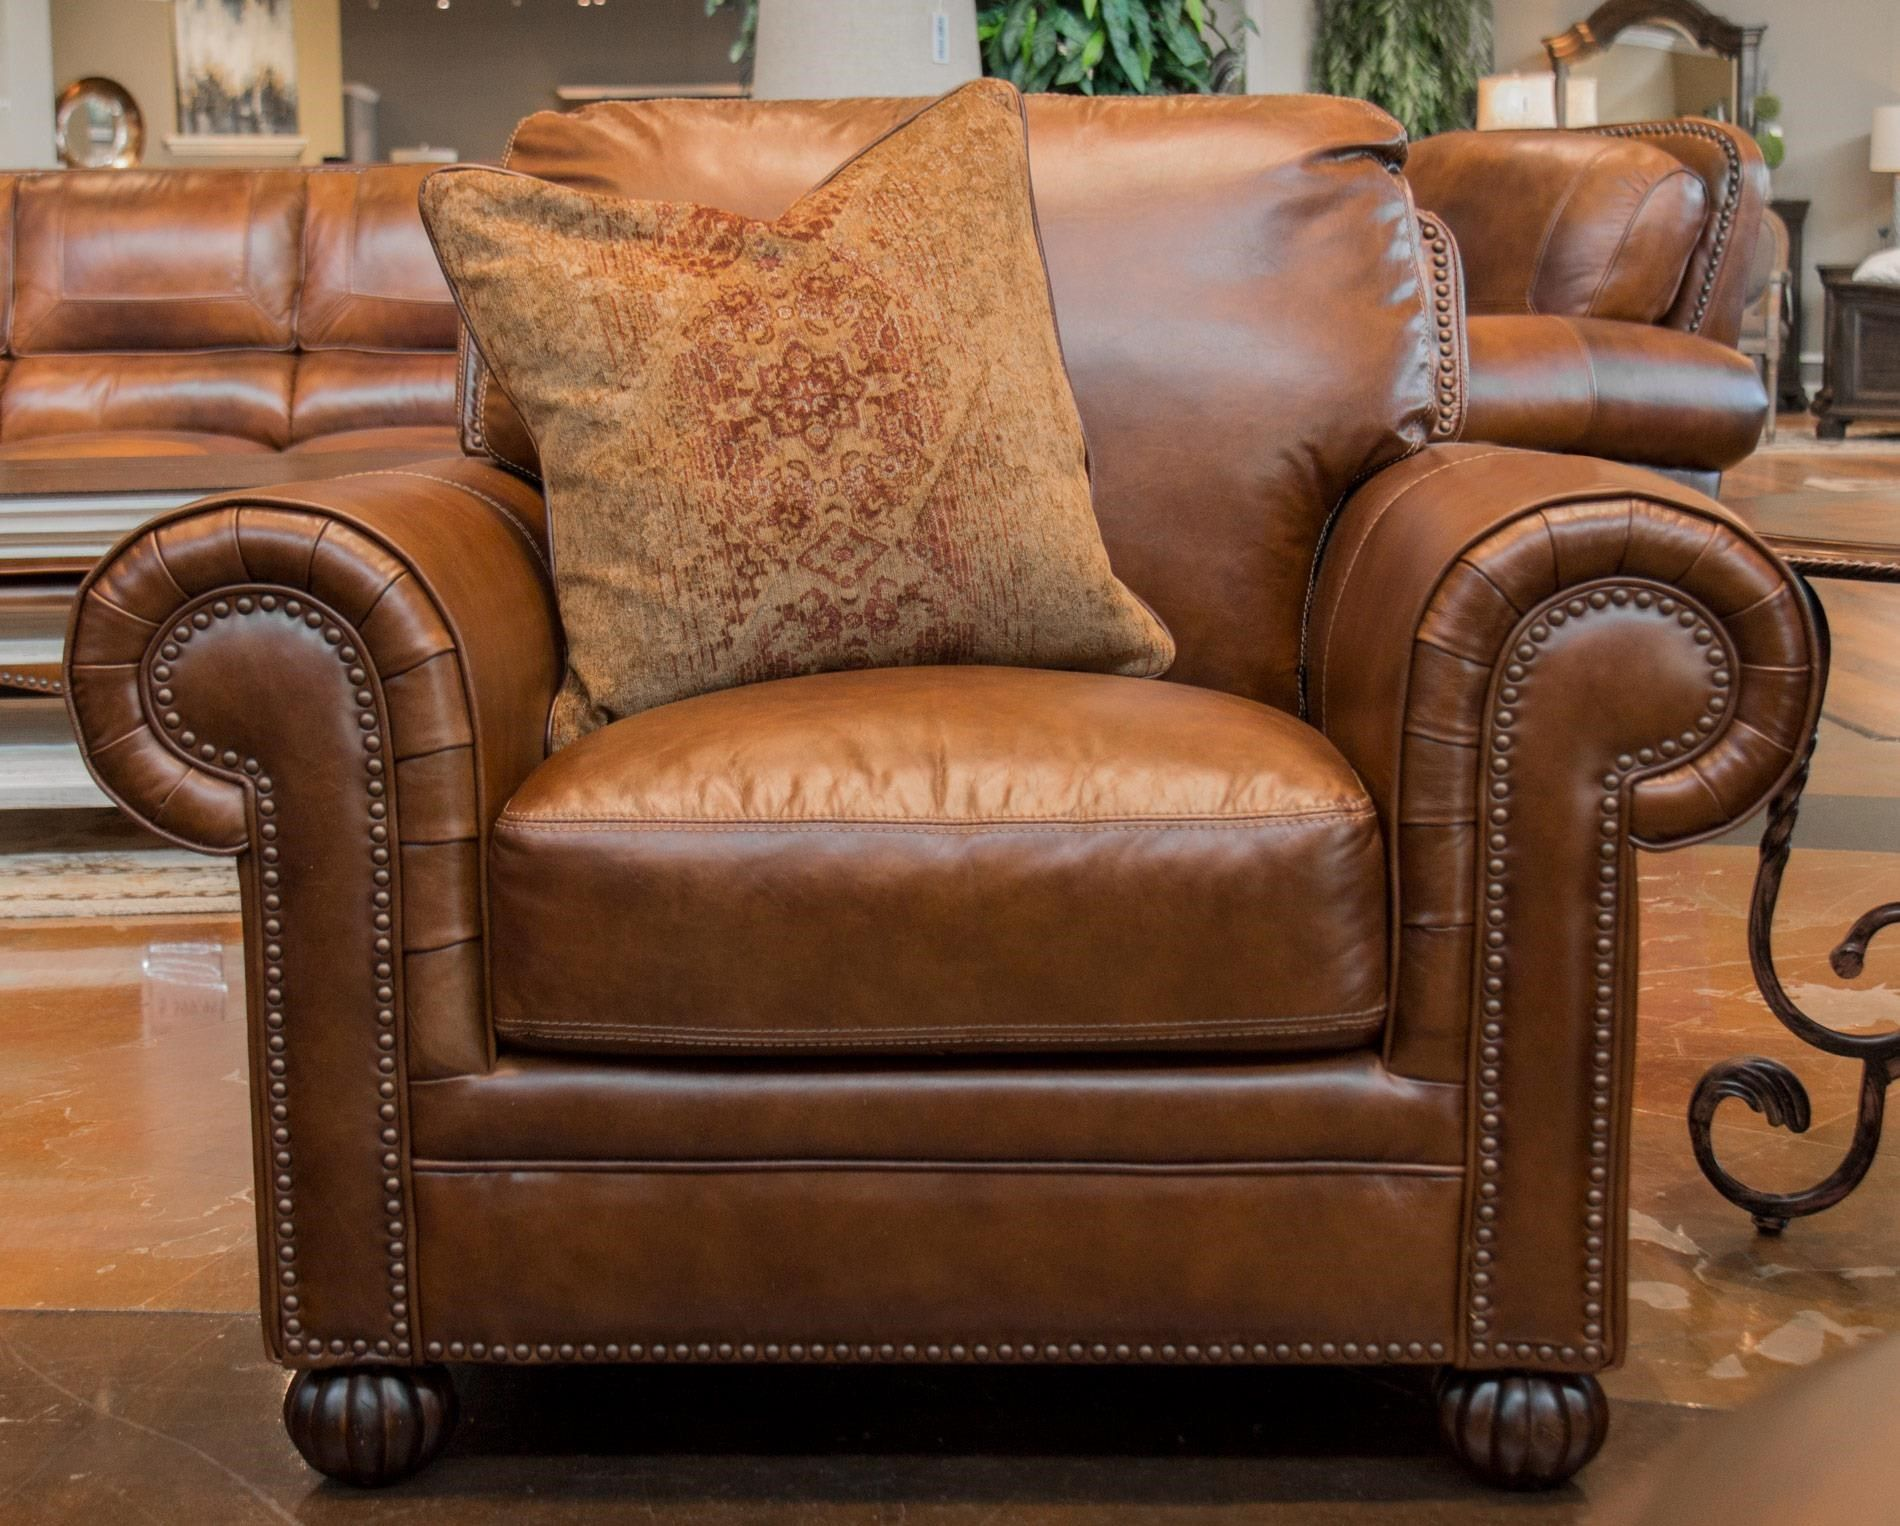 Merveilleux Saint James Tobacco Leather Chair By Simon Li At Great American Home Store